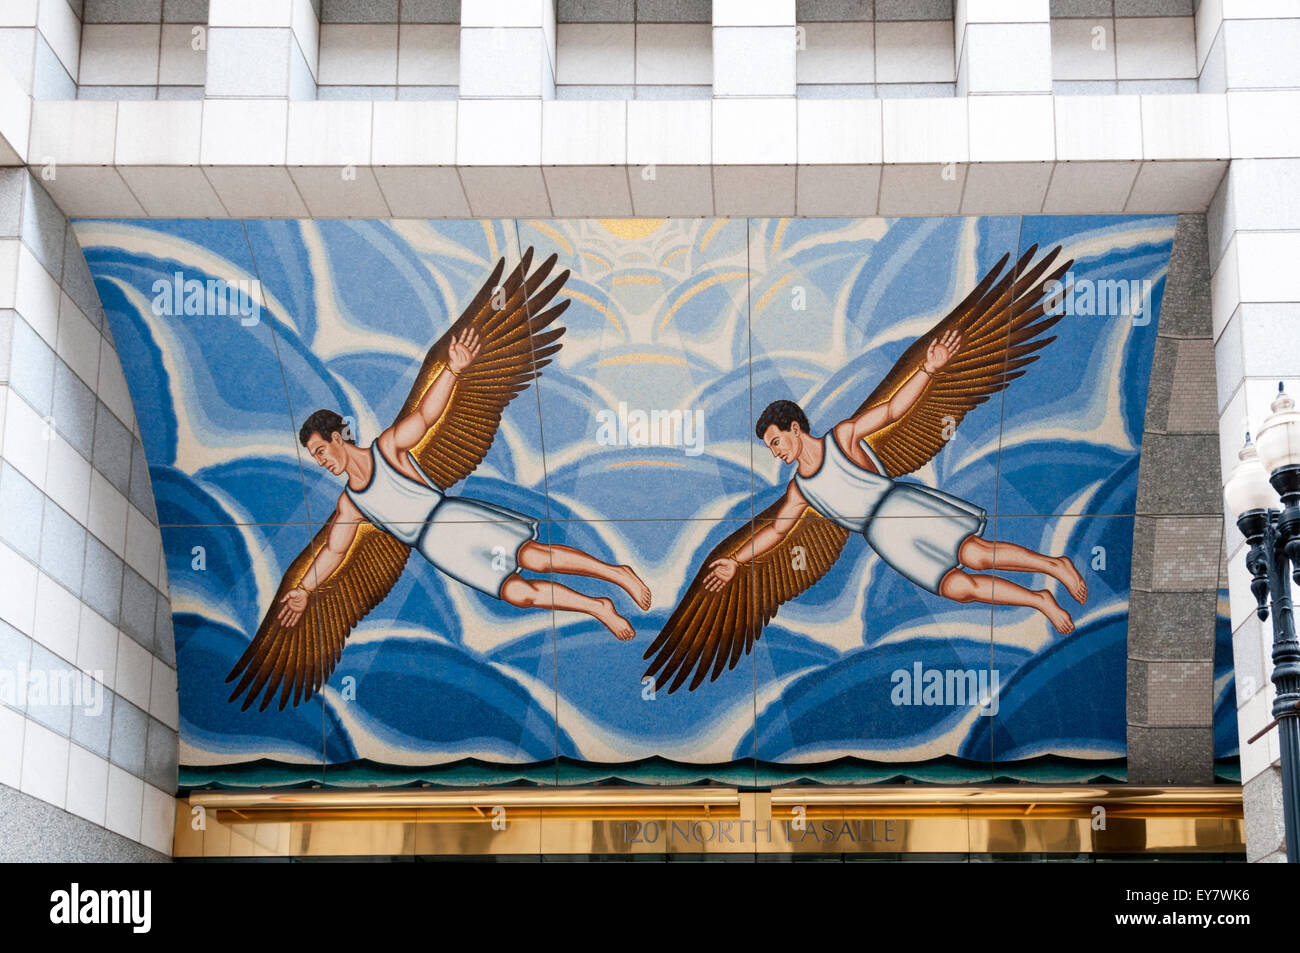 The Flight of Daedalus and Icarus by Roger Brown over the entrance to 120 North La Salle Street, Chicago. - Stock Image